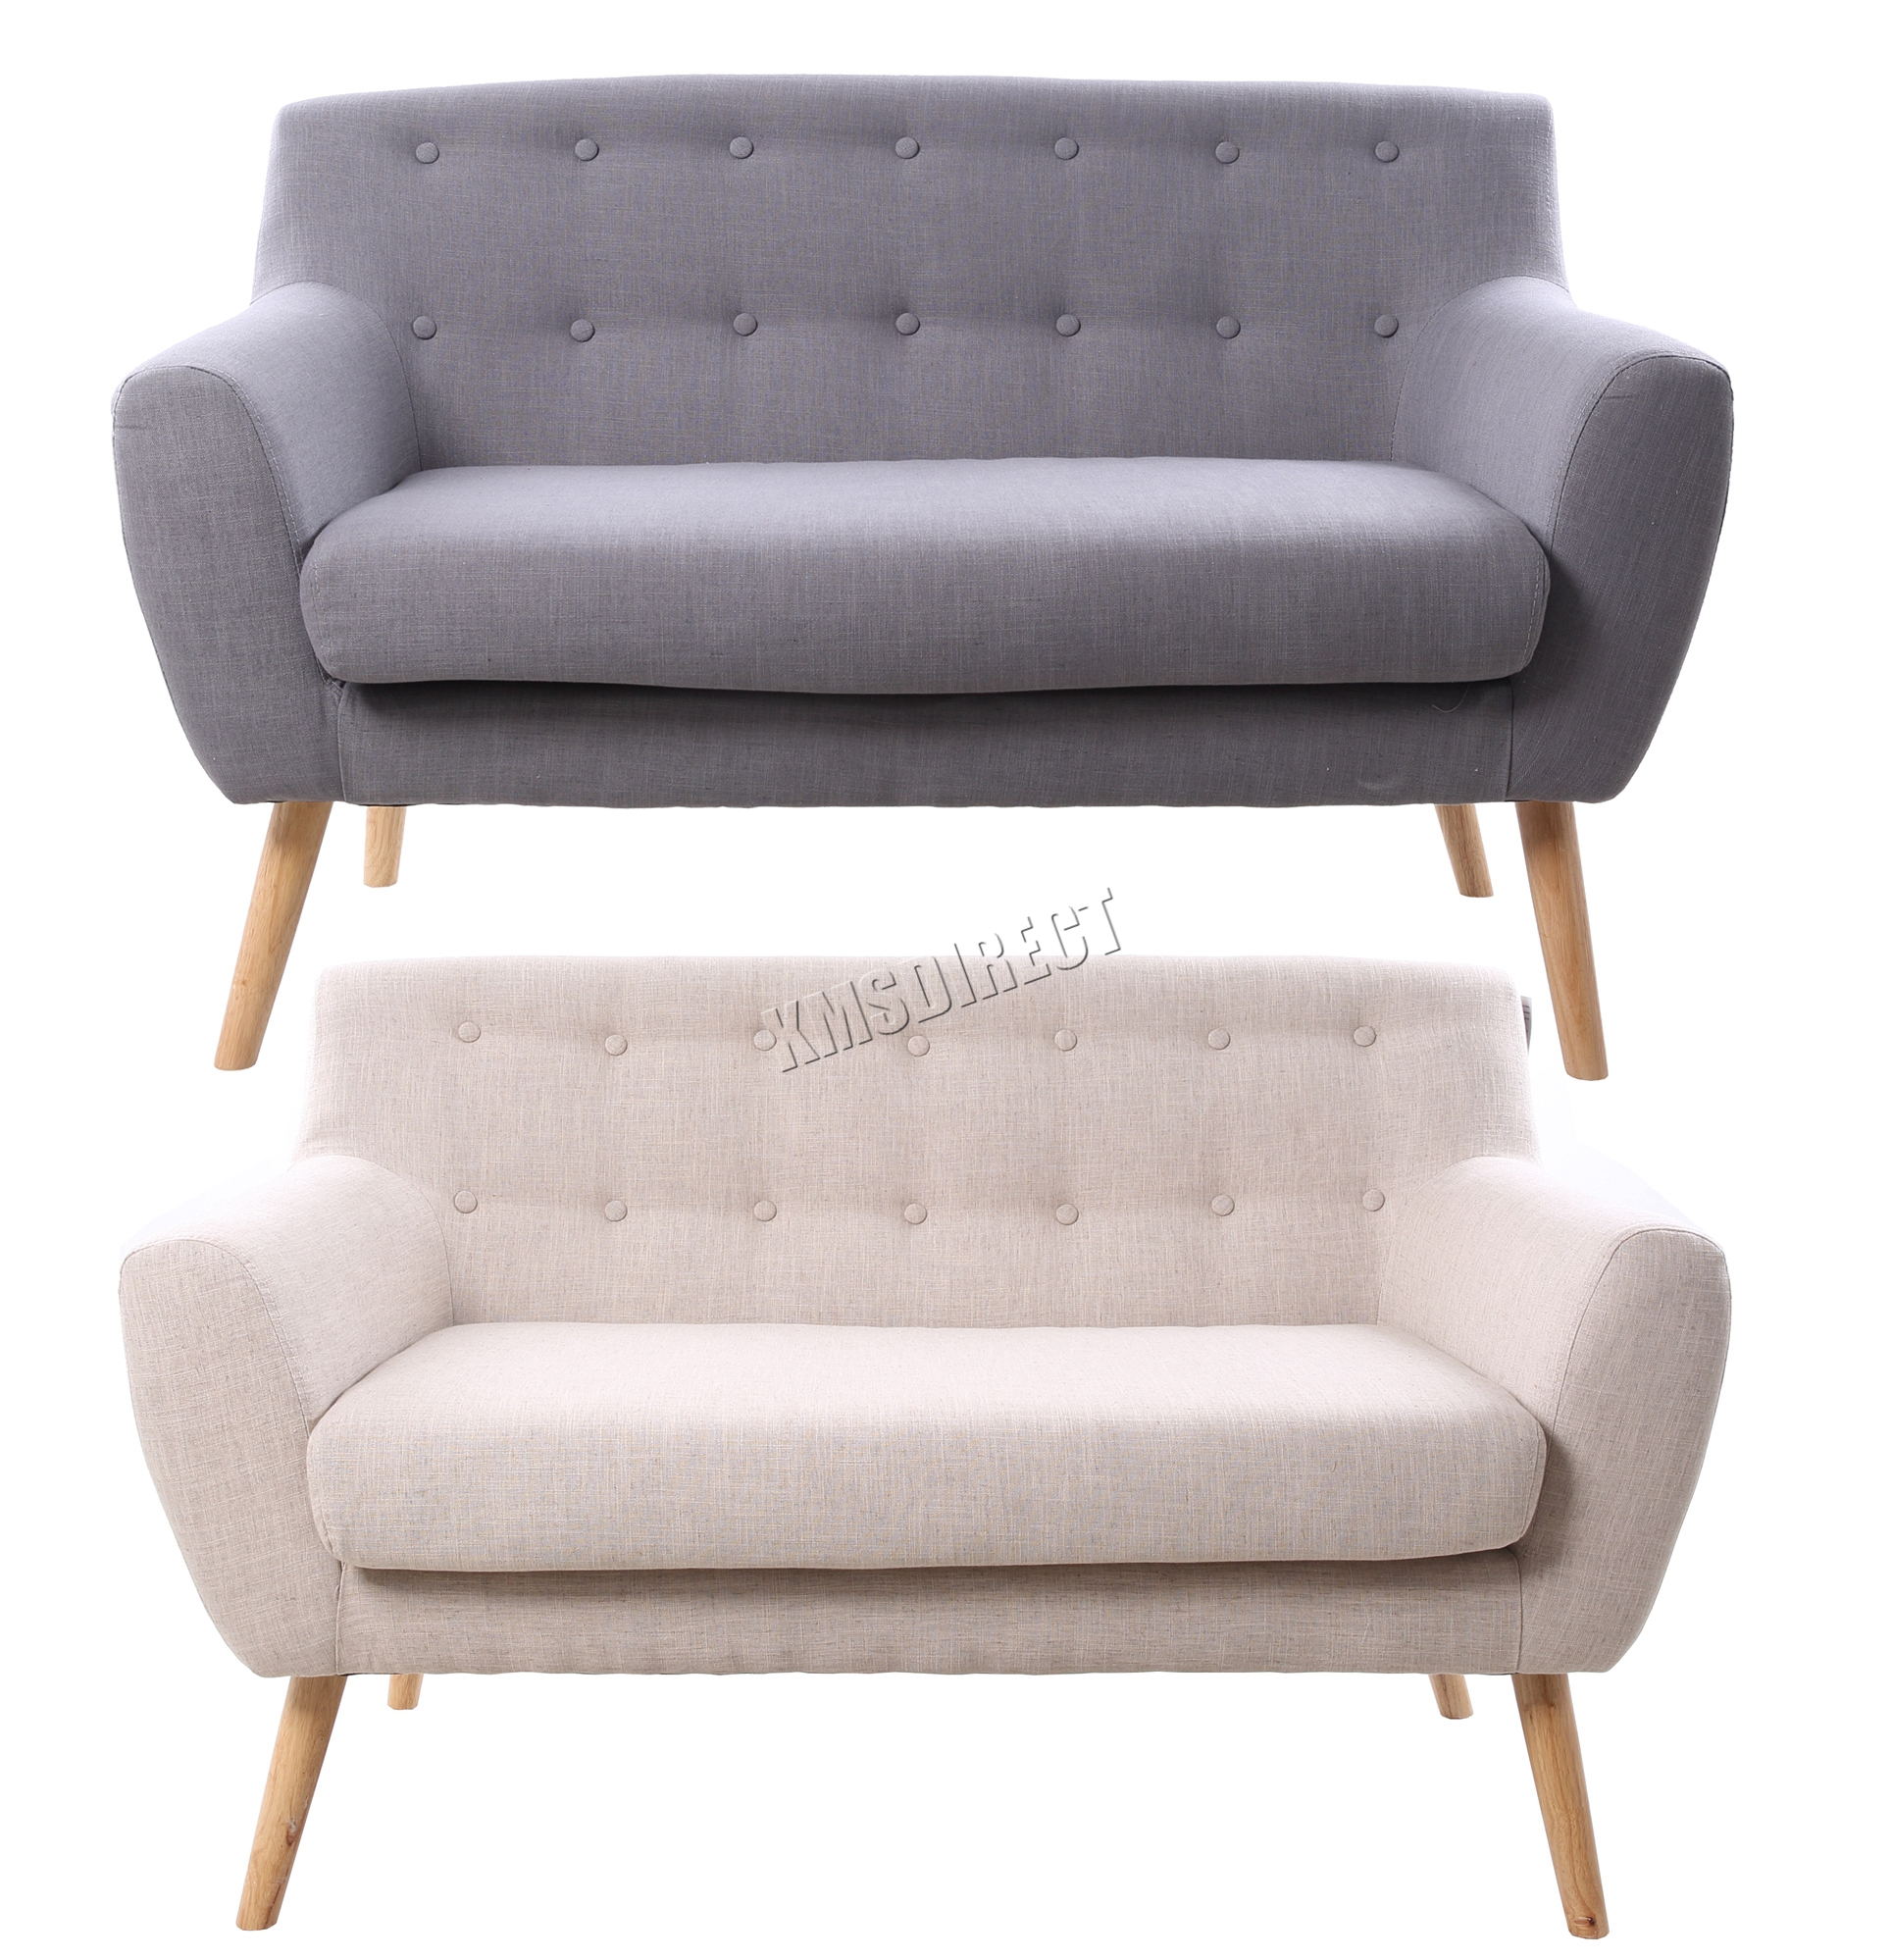 foxhunter leinenstoff 2 sitzer sofa couch esszimmer lounge b ro 2ssf02 neu ebay. Black Bedroom Furniture Sets. Home Design Ideas